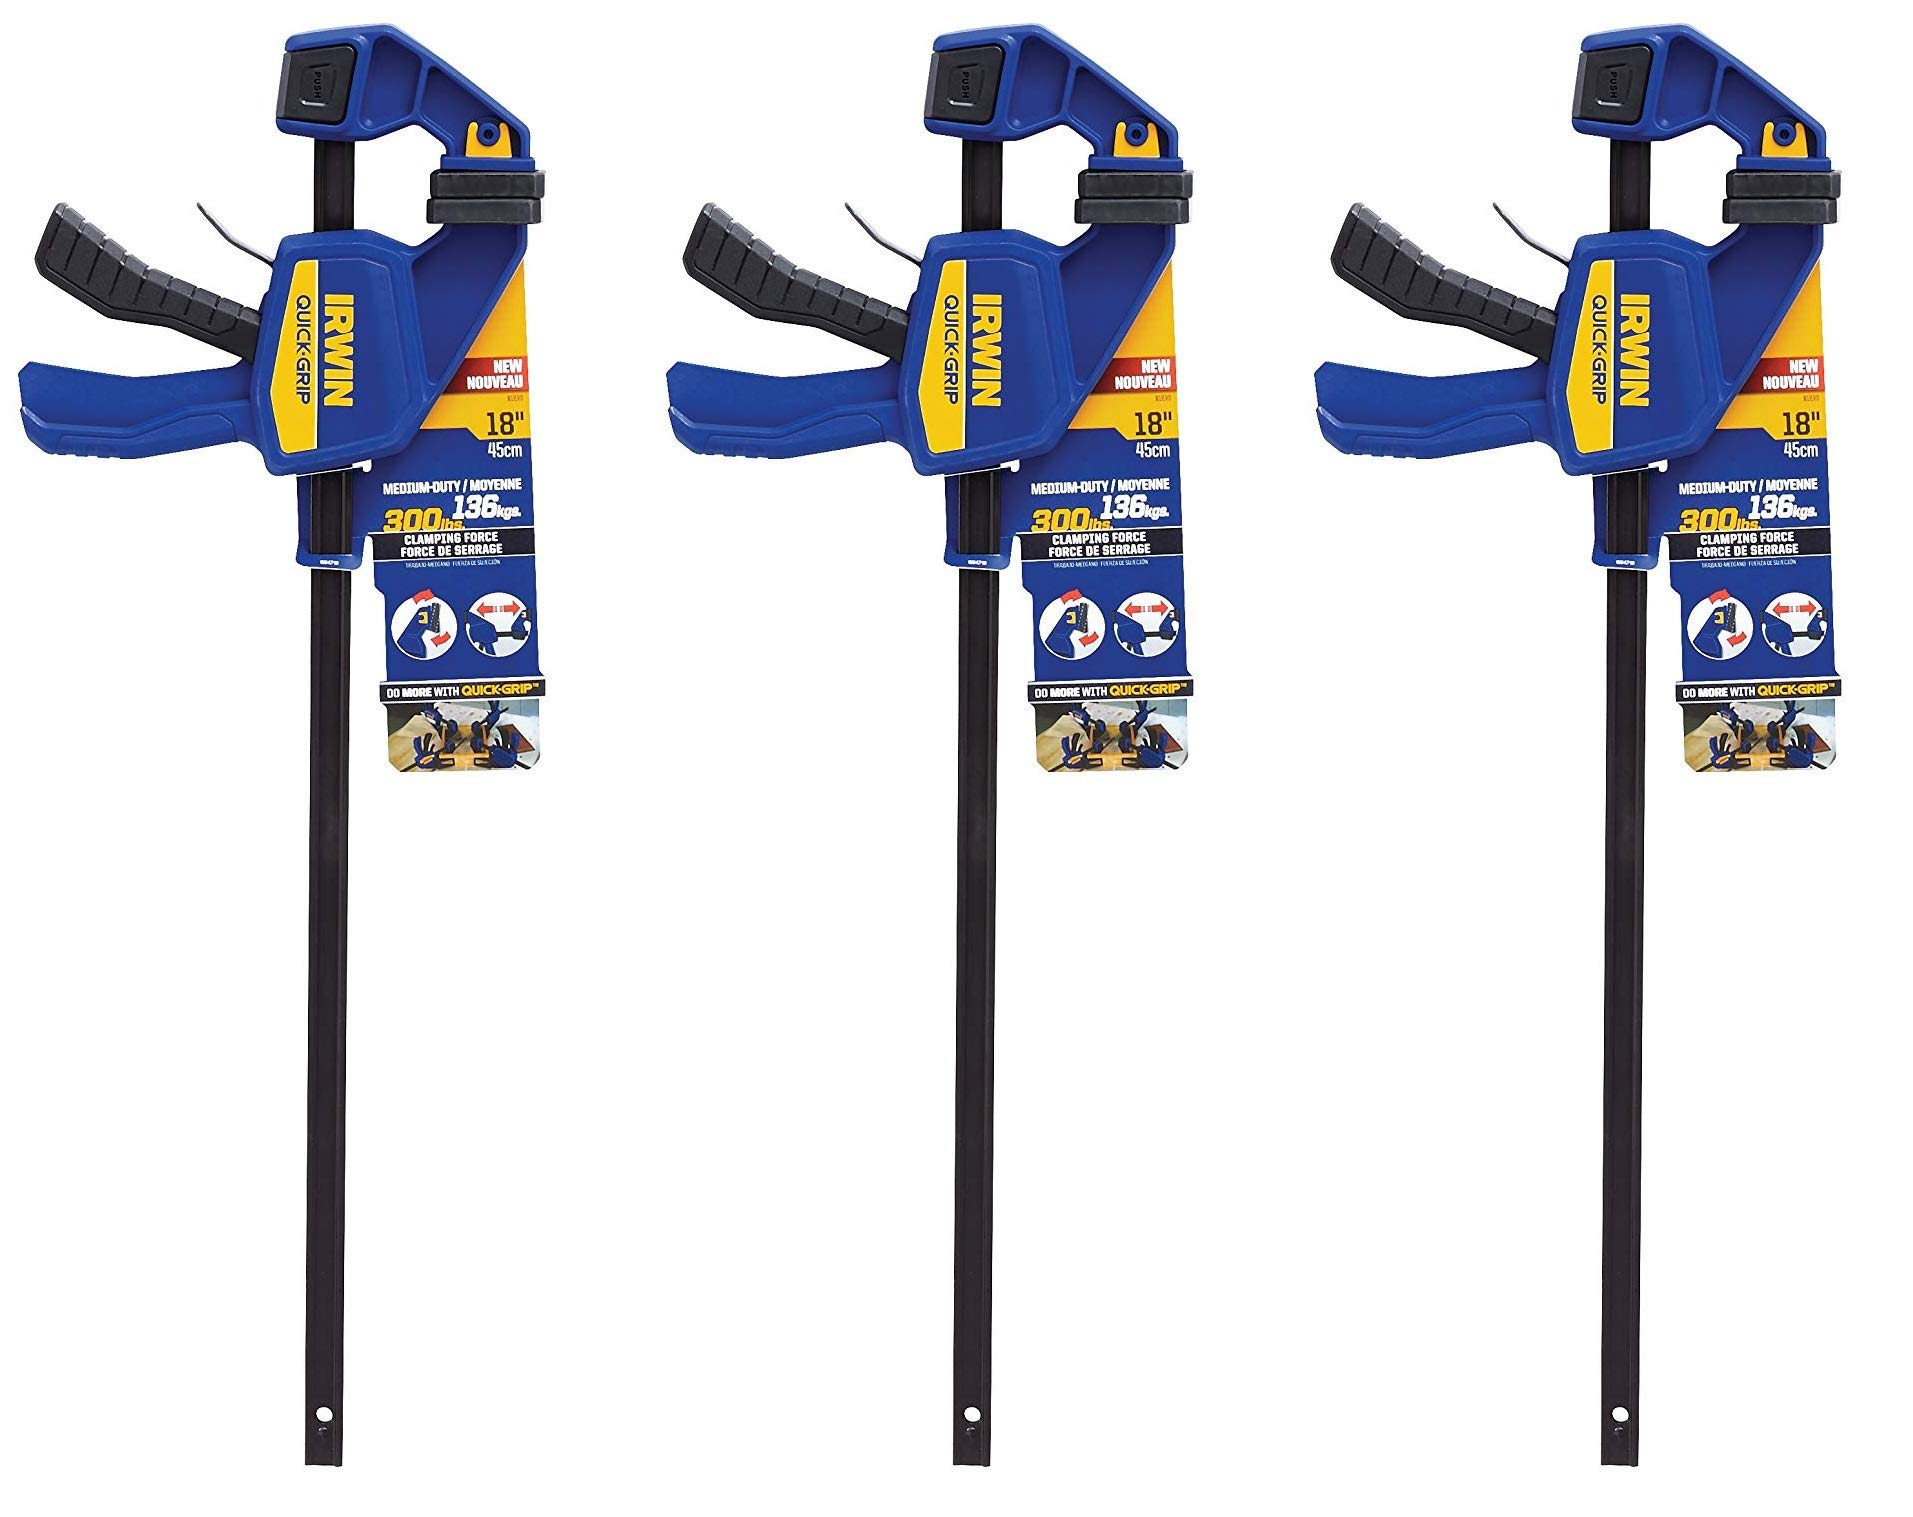 IRWIN QUICK-GRIP One-Handed Bar Clamp, Medium-Duty, 18'', 3 Pack, 1964719 by Irwin Tools (Image #1)